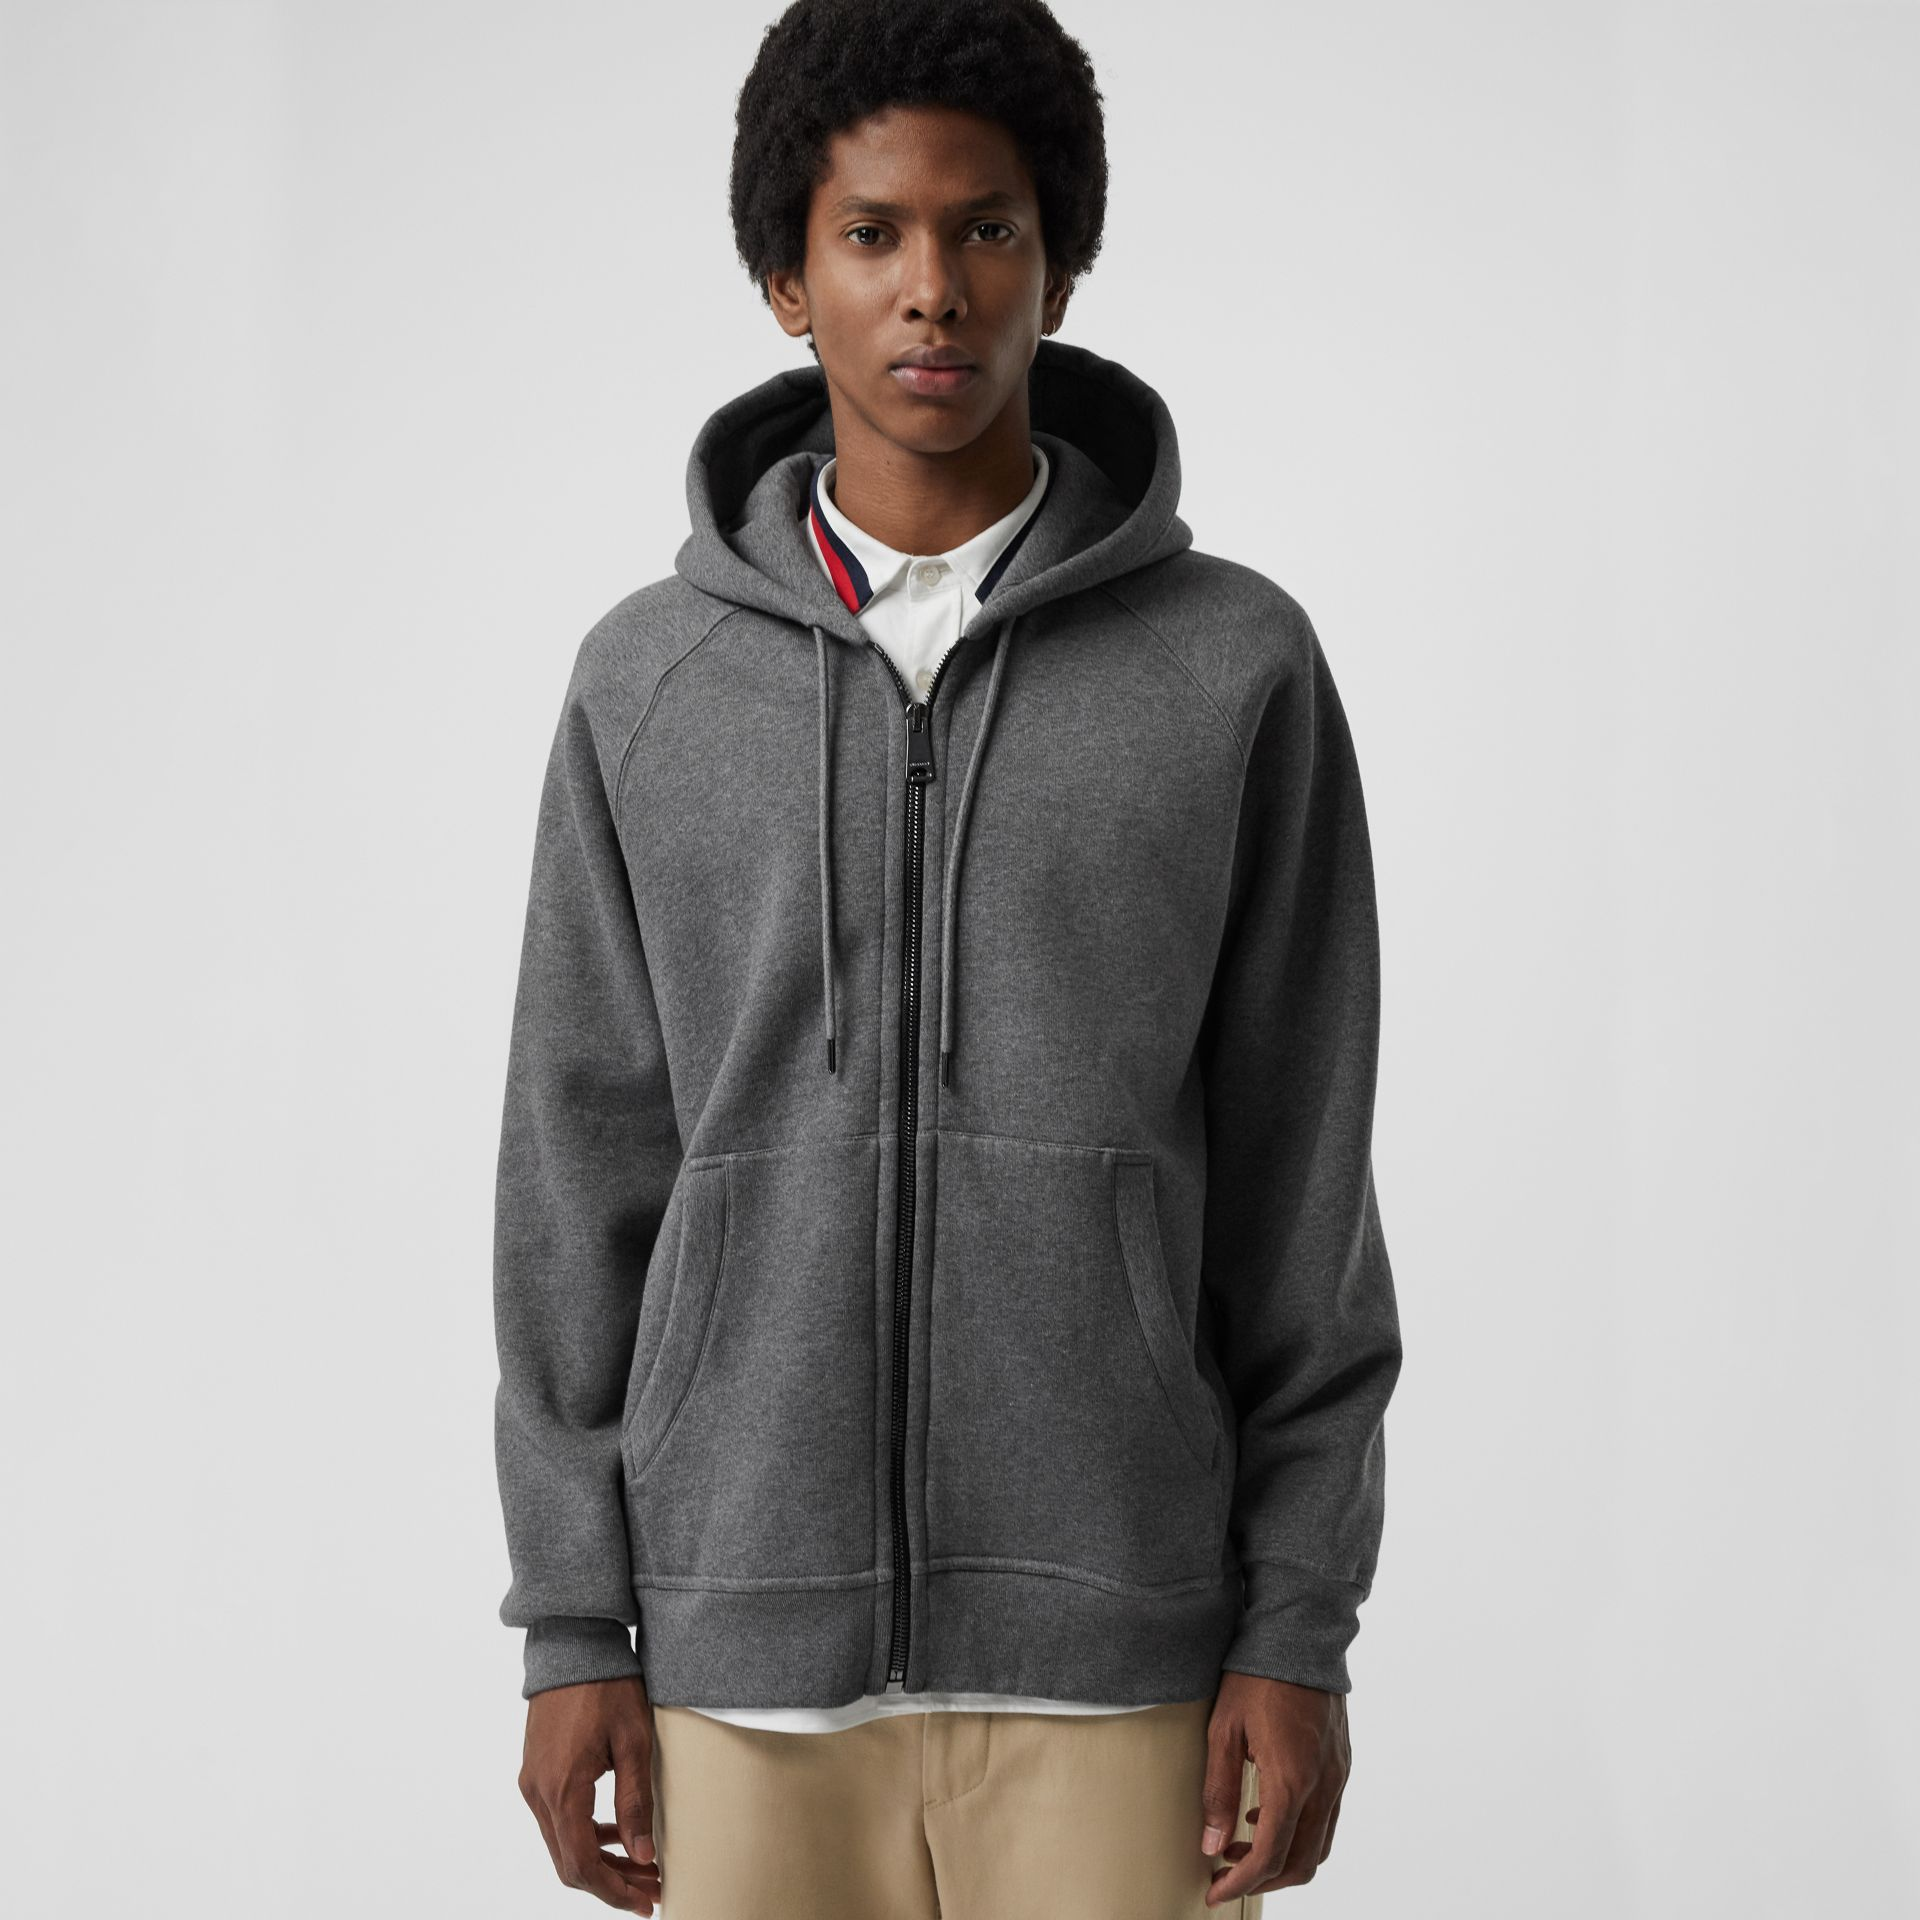 Embroidered Logo Jersey Hooded Top in Mid Grey Melange - Men | Burberry Australia - gallery image 0